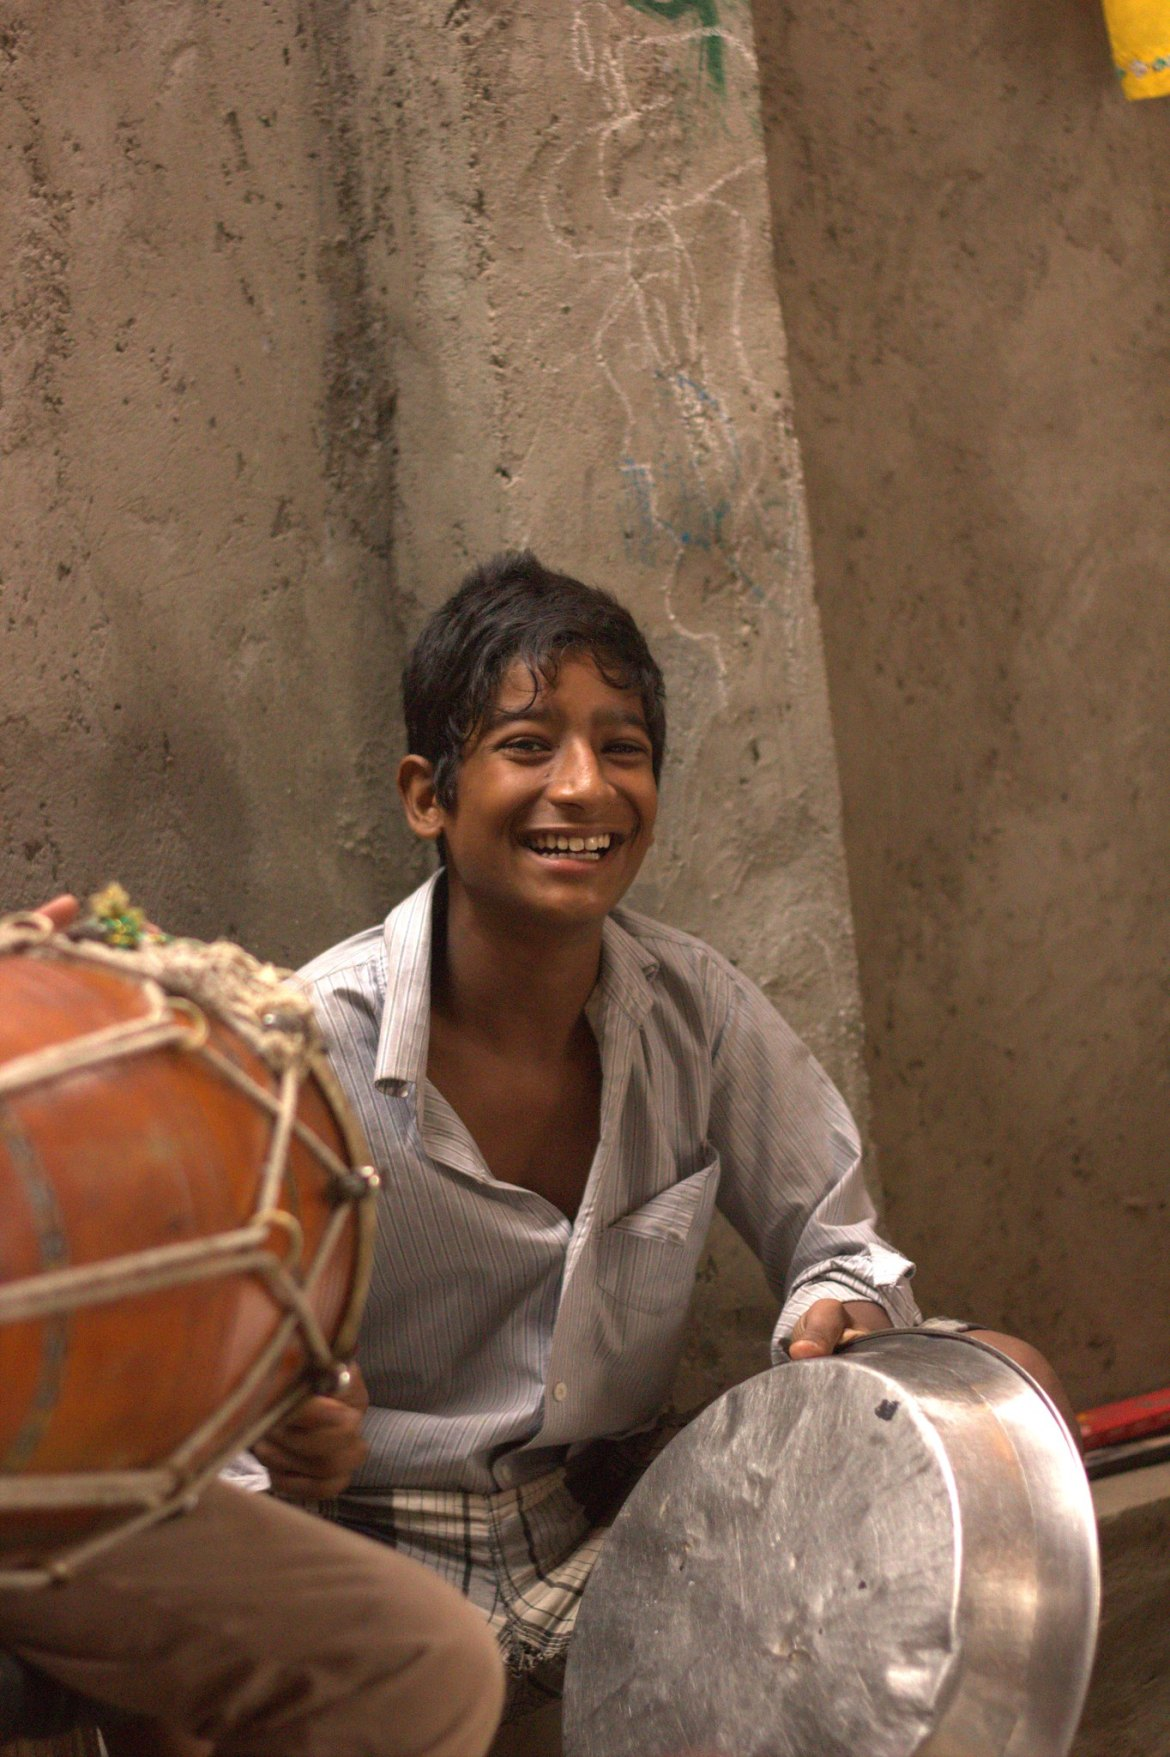 A young musician of Kathputli Colony